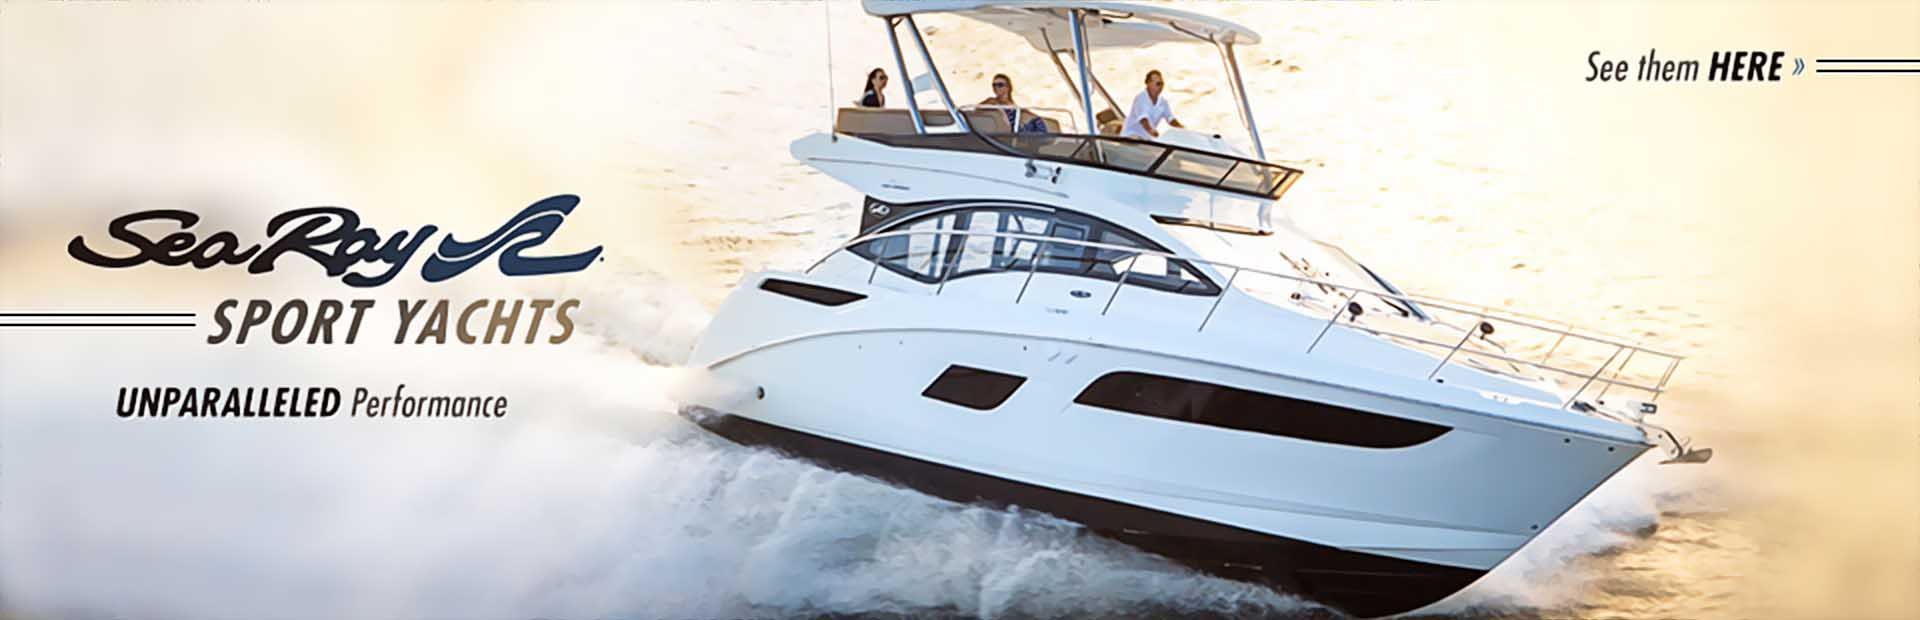 Sea Ray Sport Yachts: Click here to view the models.